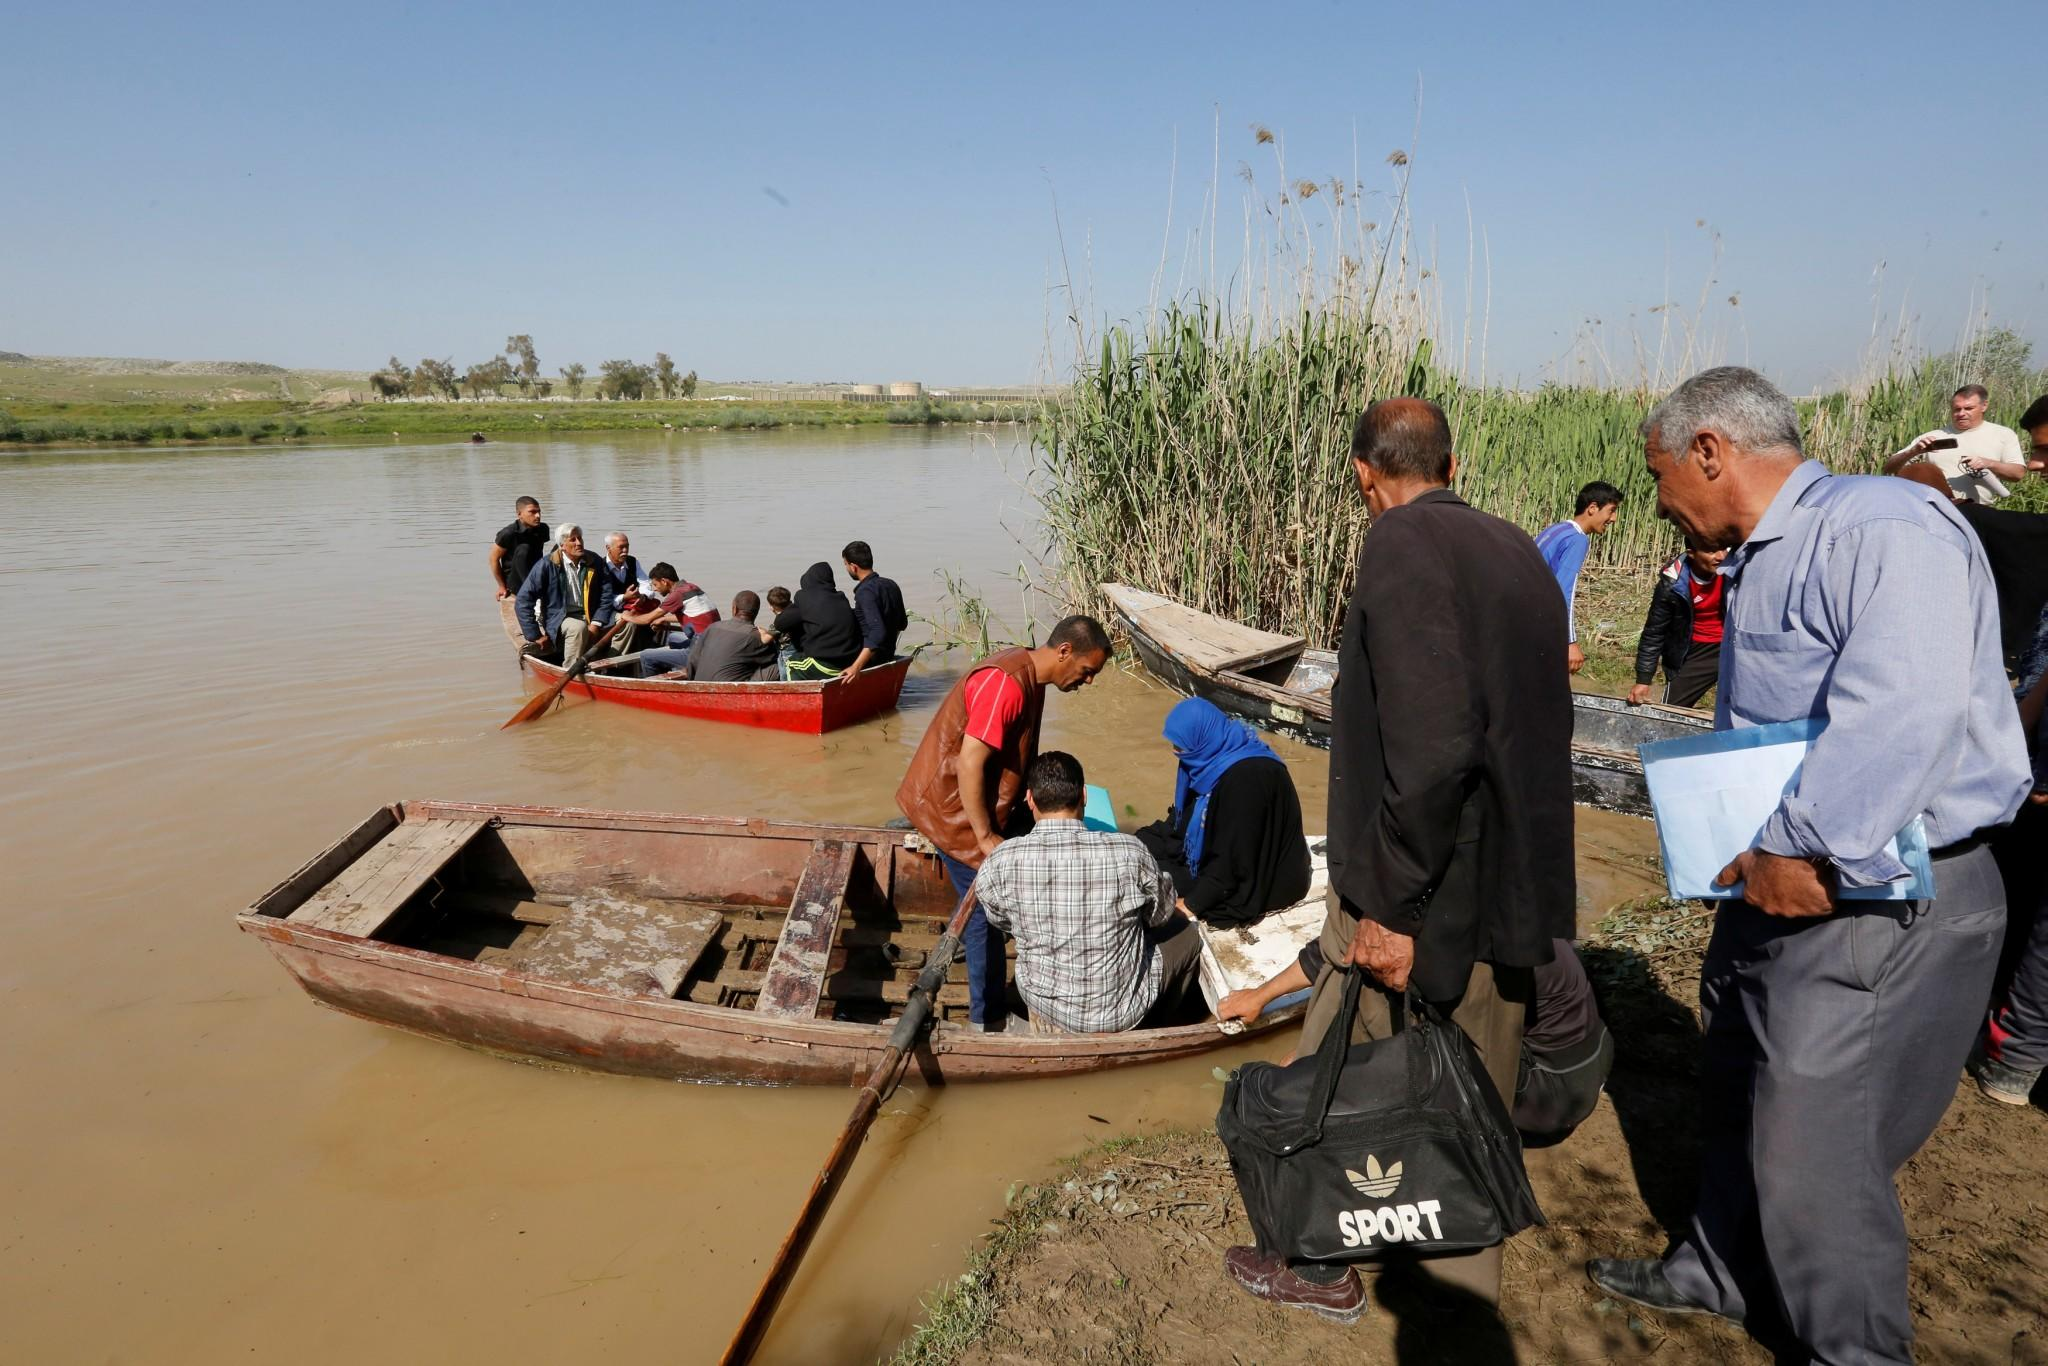 With bridges closed by flooding, displaced Iraqis from Mosul cross the Tigris by boat